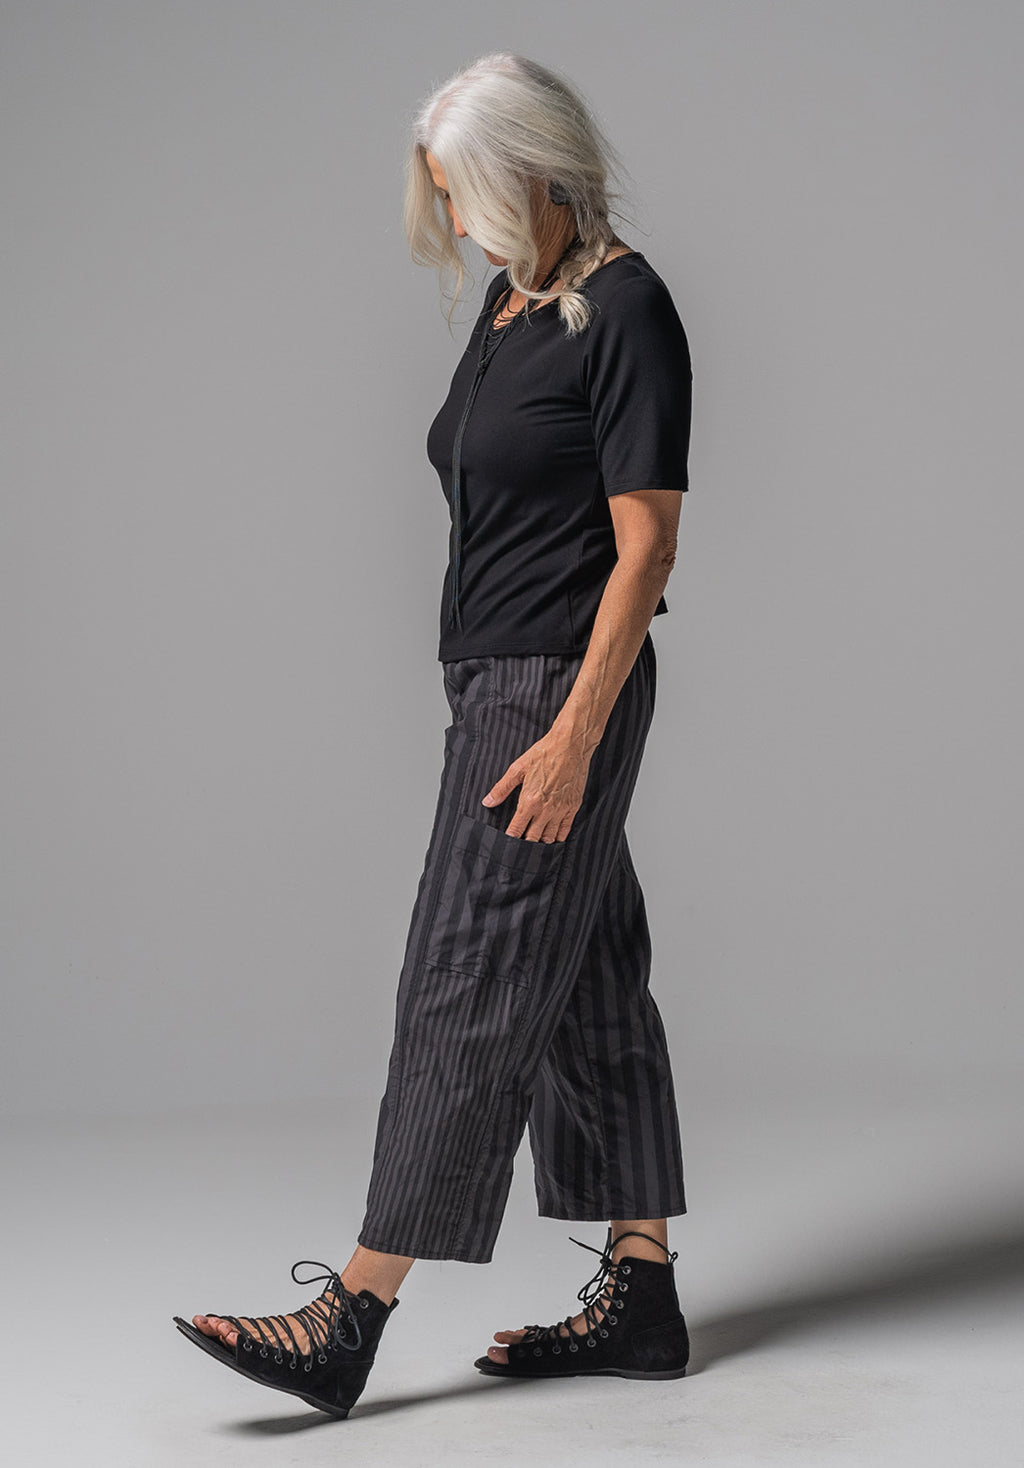 womens clothing online, womens fashion online, womens fashion online australia, ethical fashion au